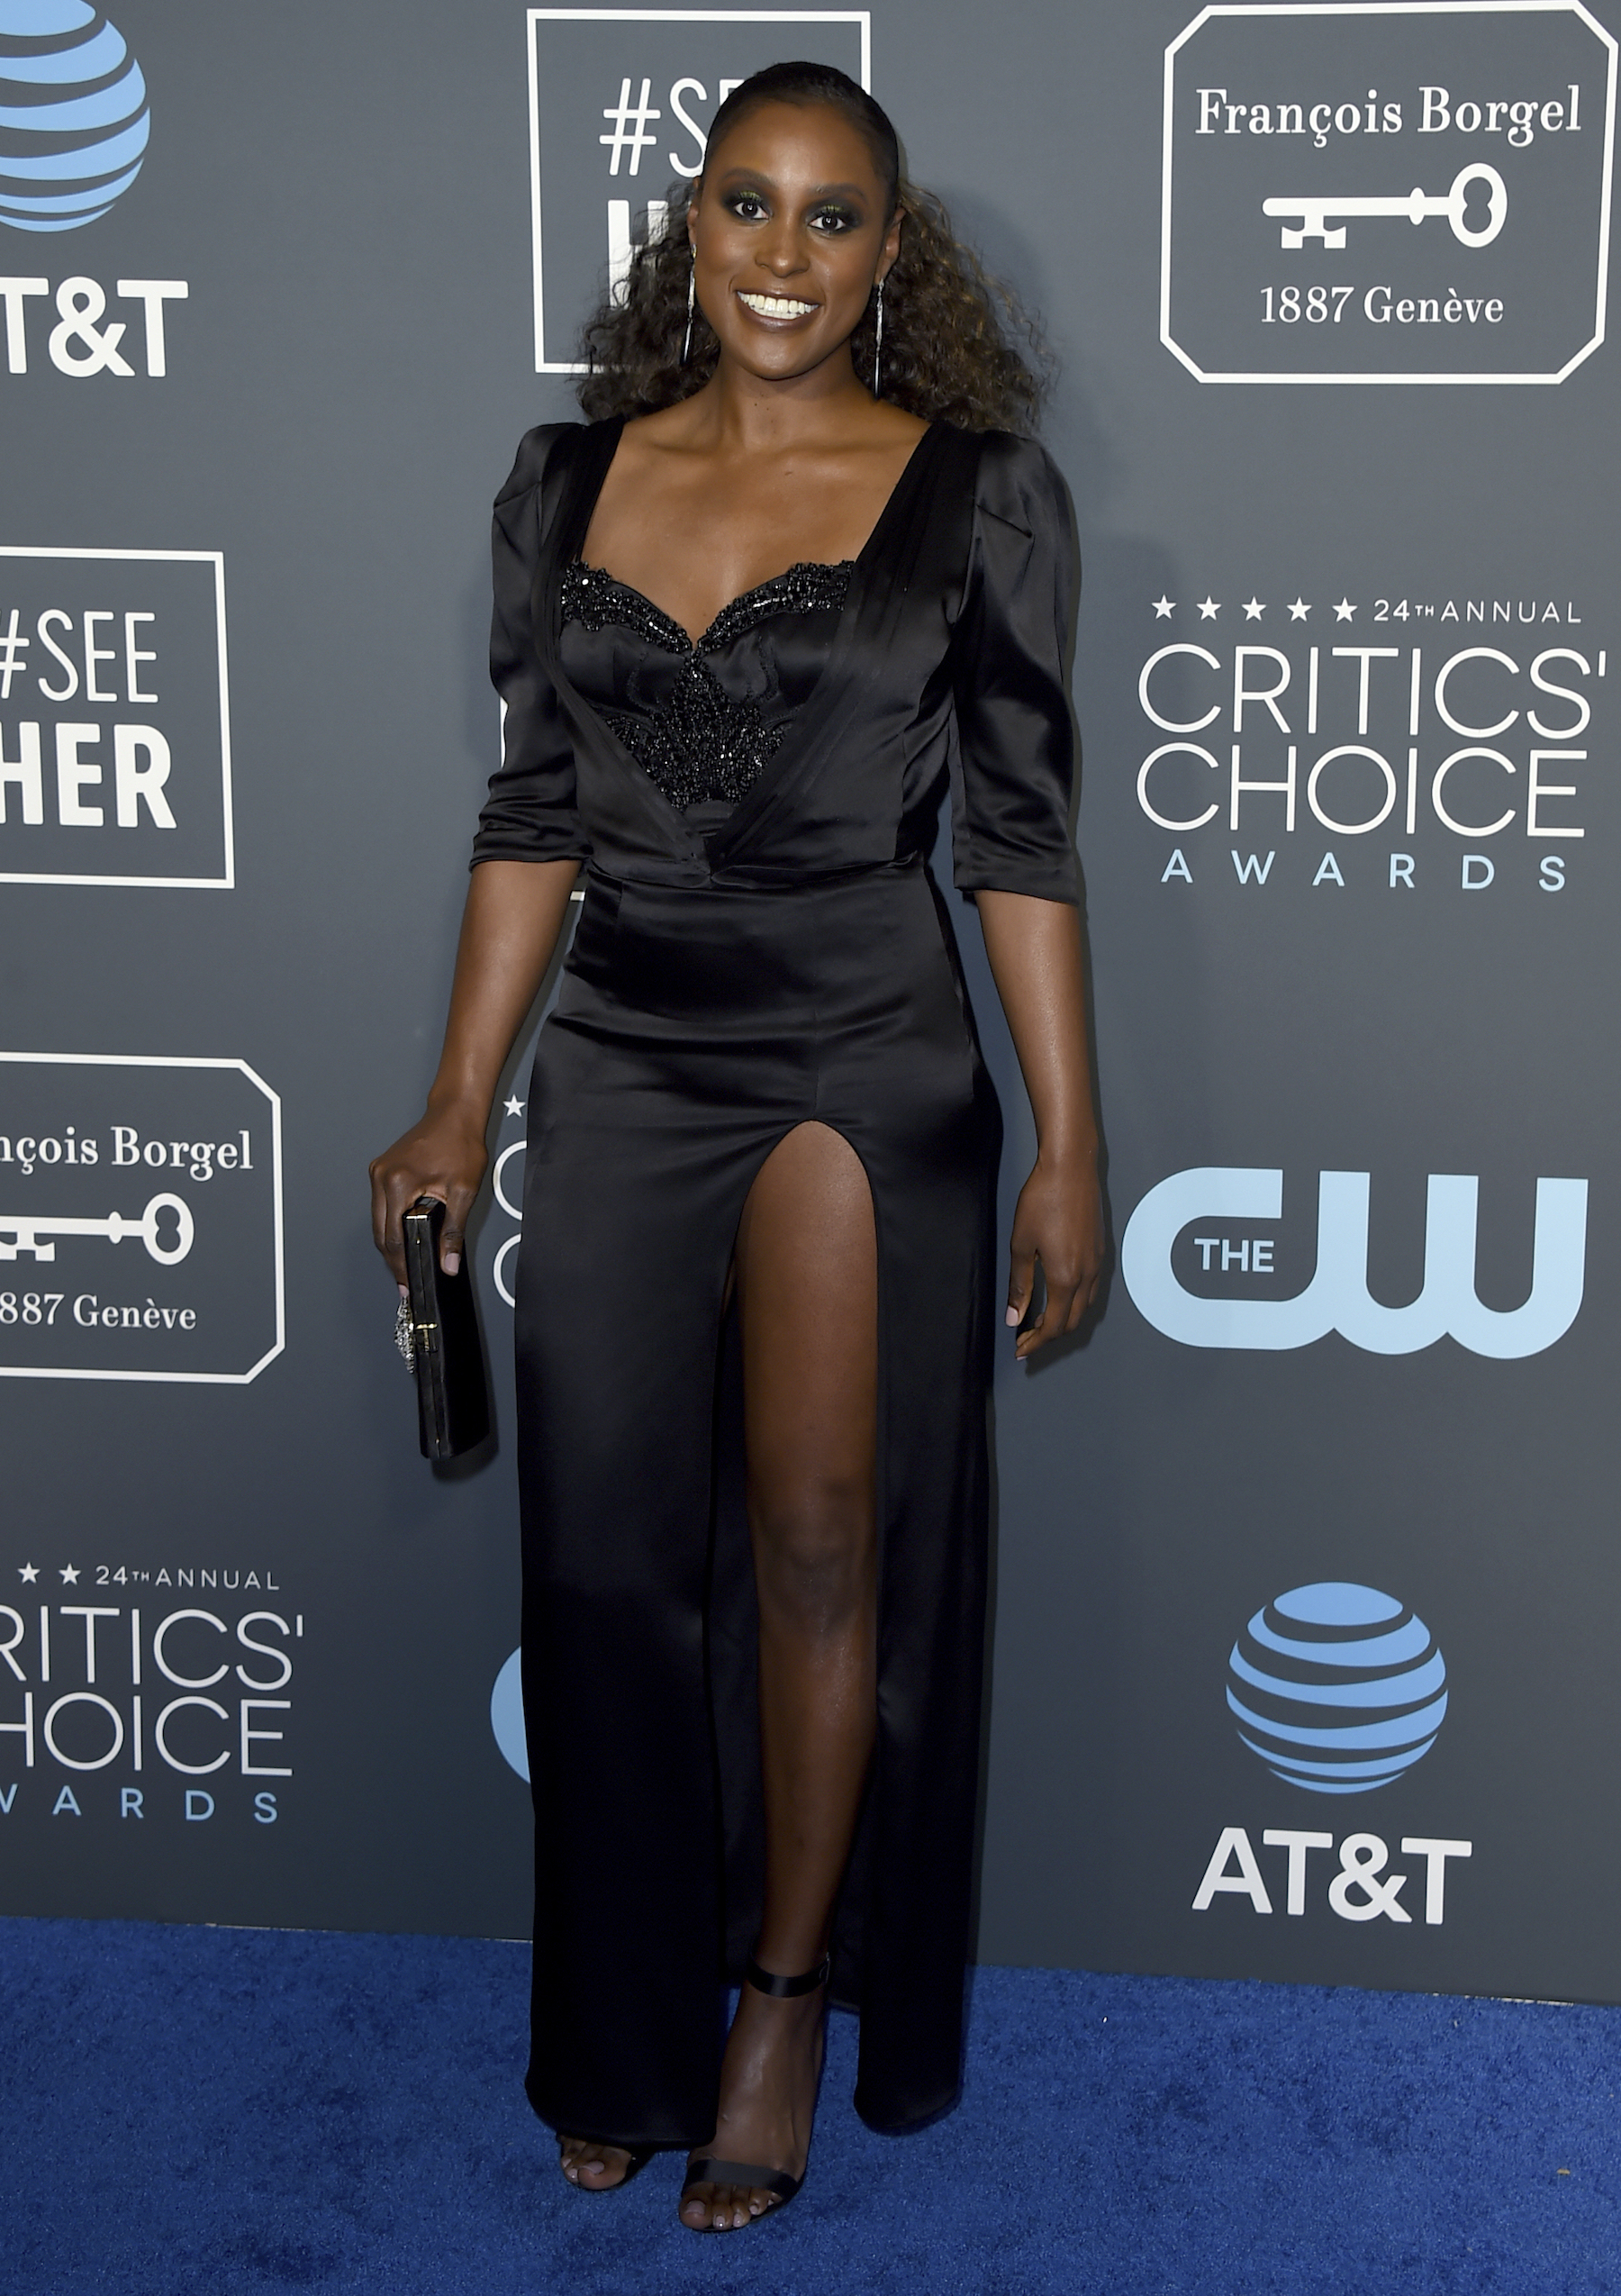 "<div class=""meta image-caption""><div class=""origin-logo origin-image ap""><span>AP</span></div><span class=""caption-text"">Issa Rae arrives at the 24th annual Critics' Choice Awards on Sunday, Jan. 13, 2019, at the Barker Hangar in Santa Monica, Calif. (Jordan Strauss/Invision/AP)</span></div>"